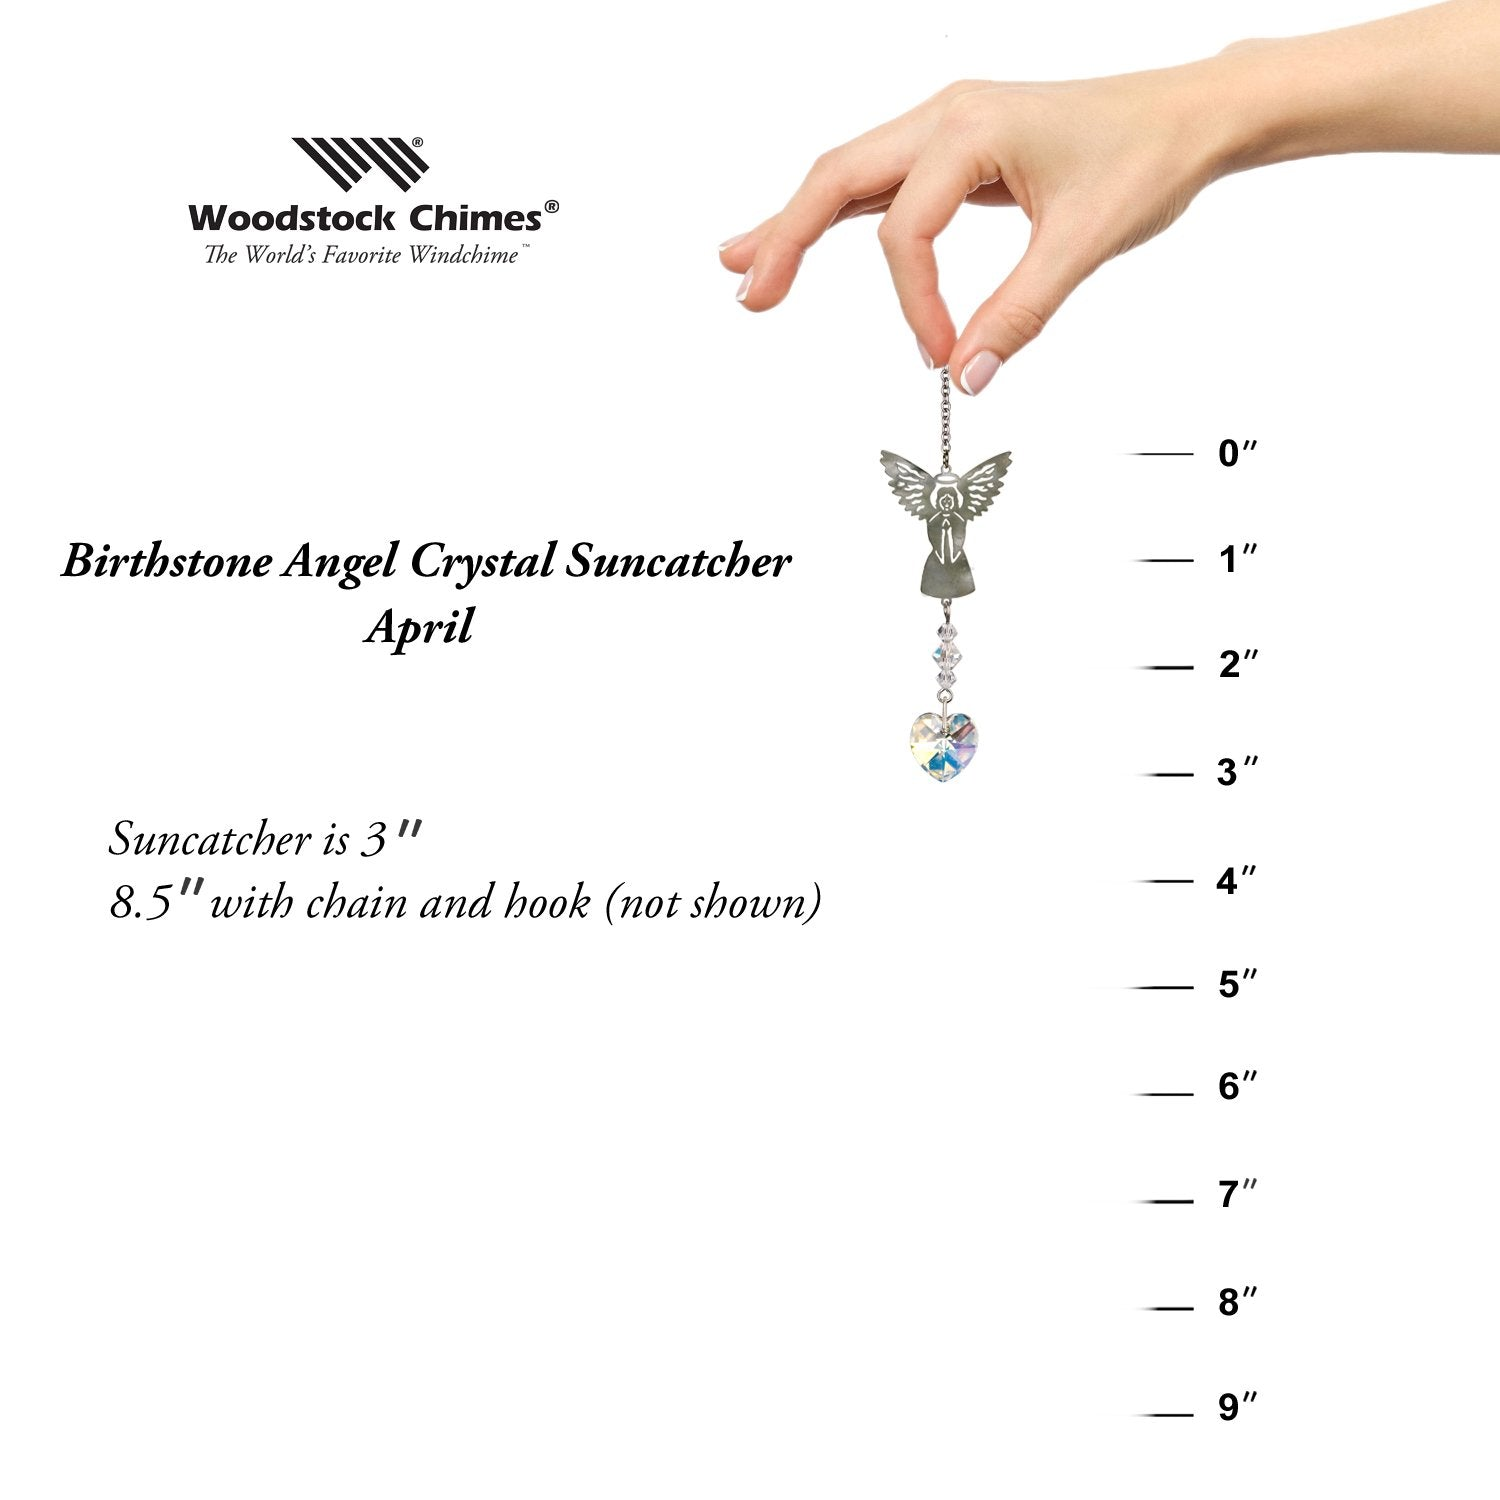 Birthstone Angel Crystal Suncatcher - April proportion image